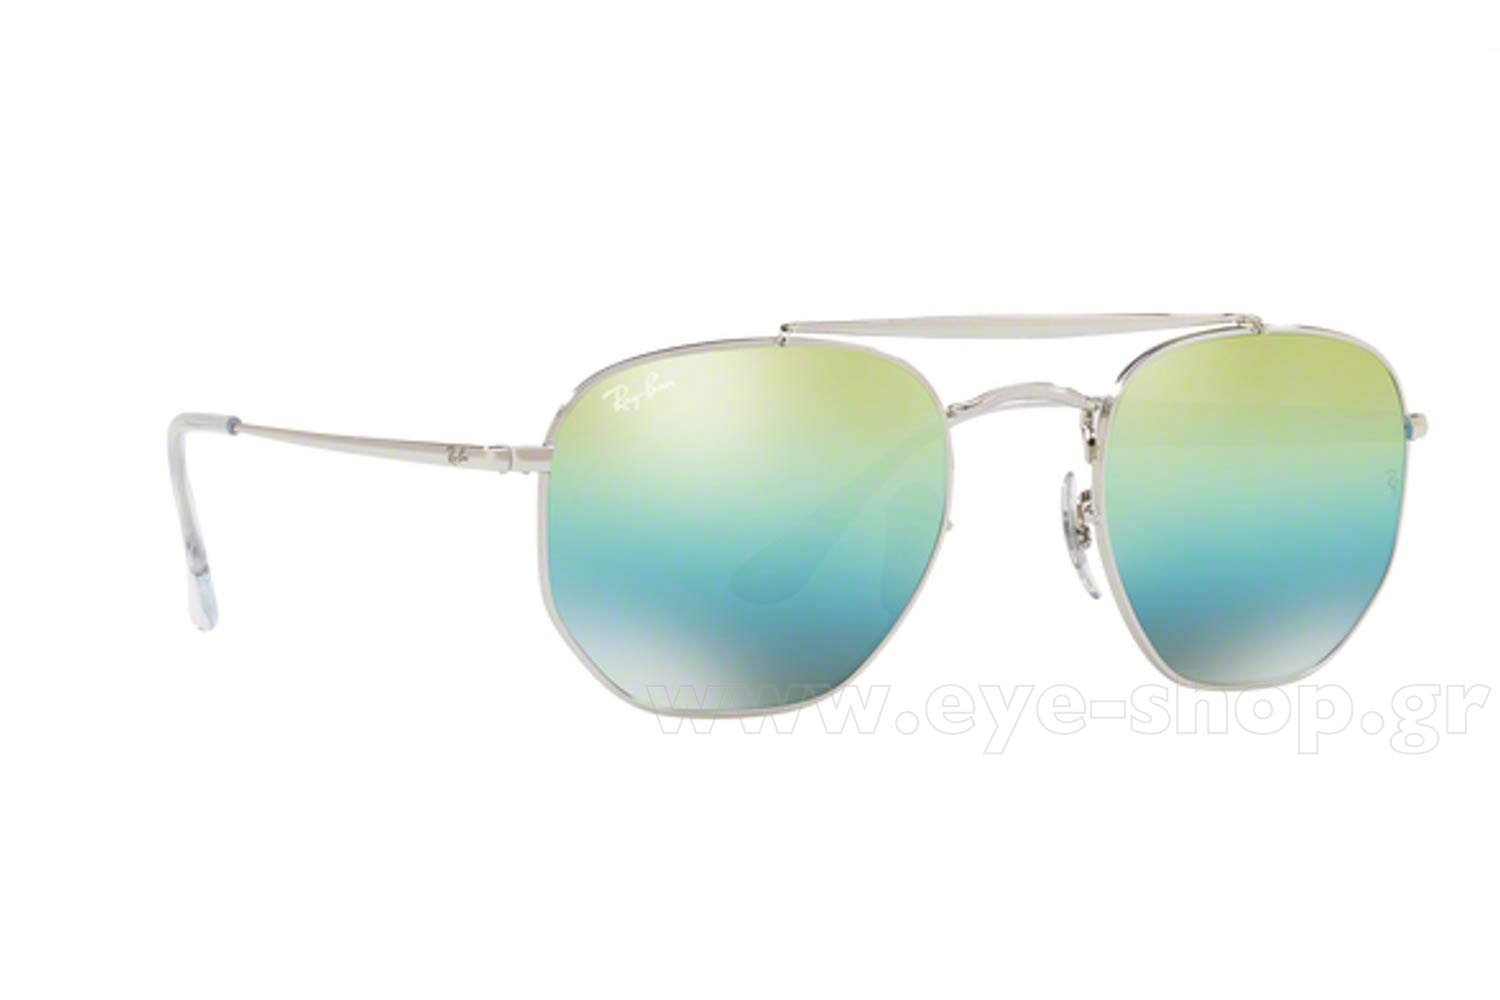 34fe2f74da SUNGLASSES Rayban 3648 THE MARSHAL 003 I2 Hexagonal Double Bridge